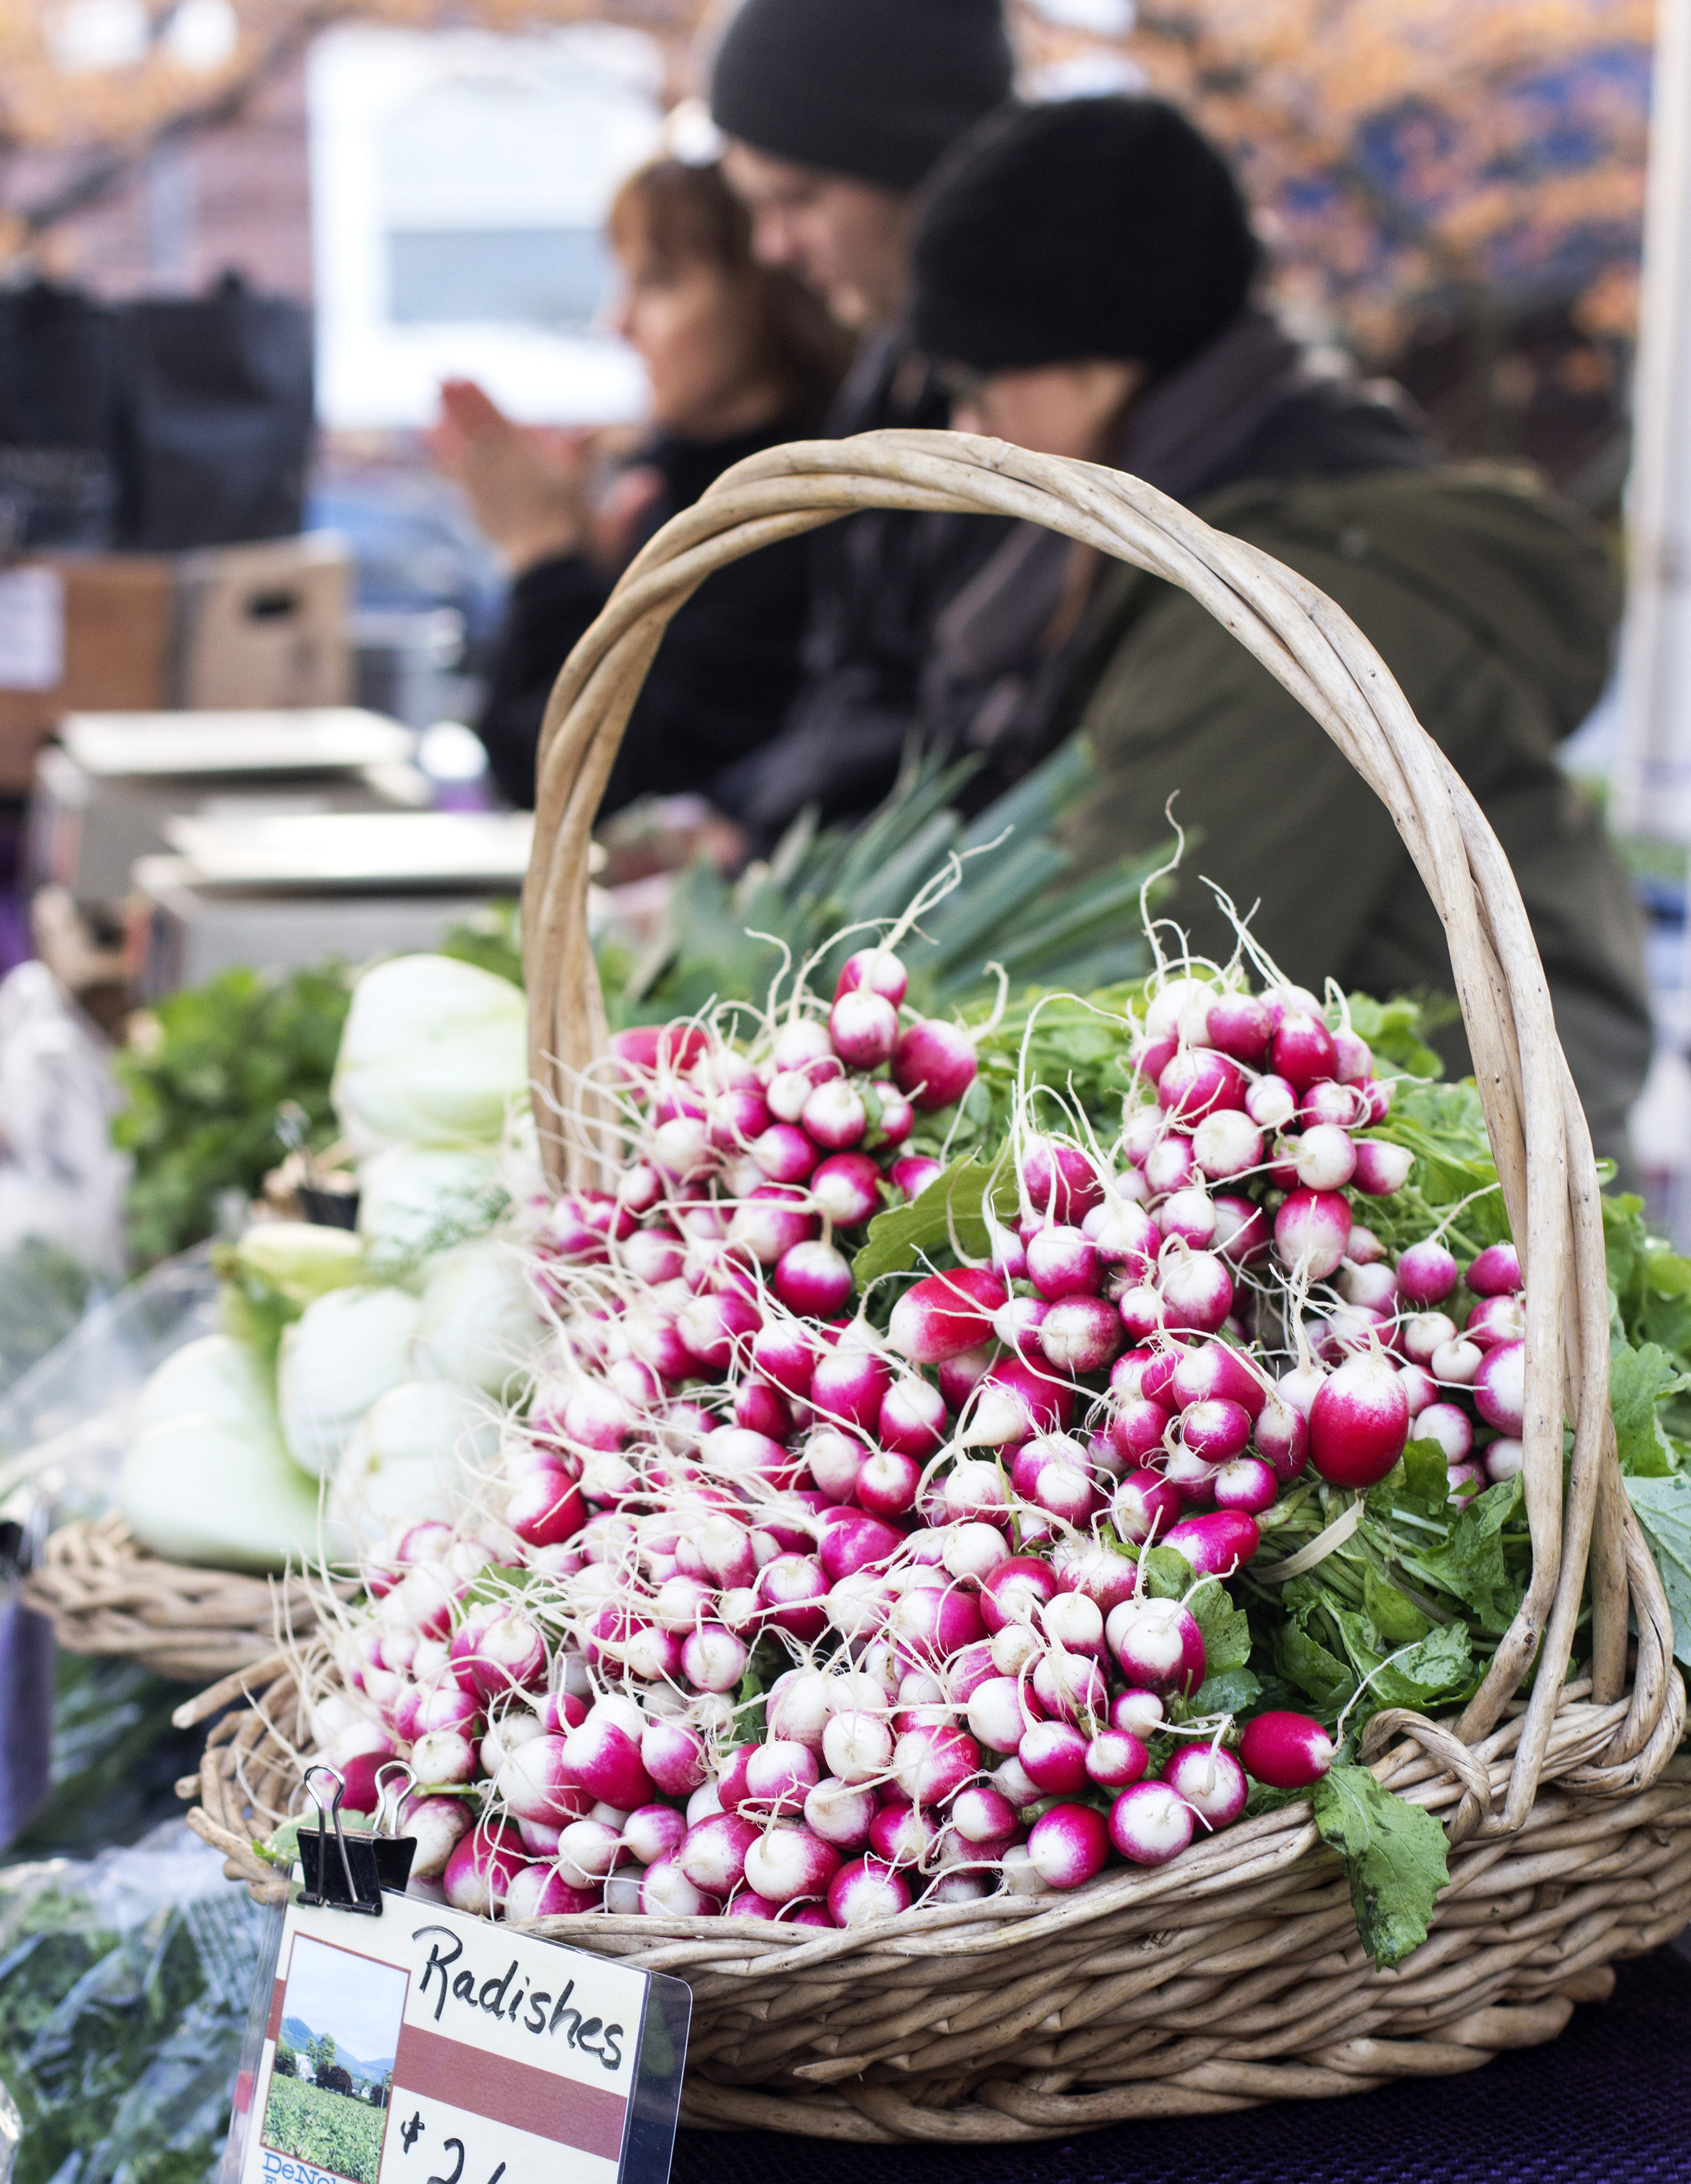 Winter_Farmers_Market_0004.jpg